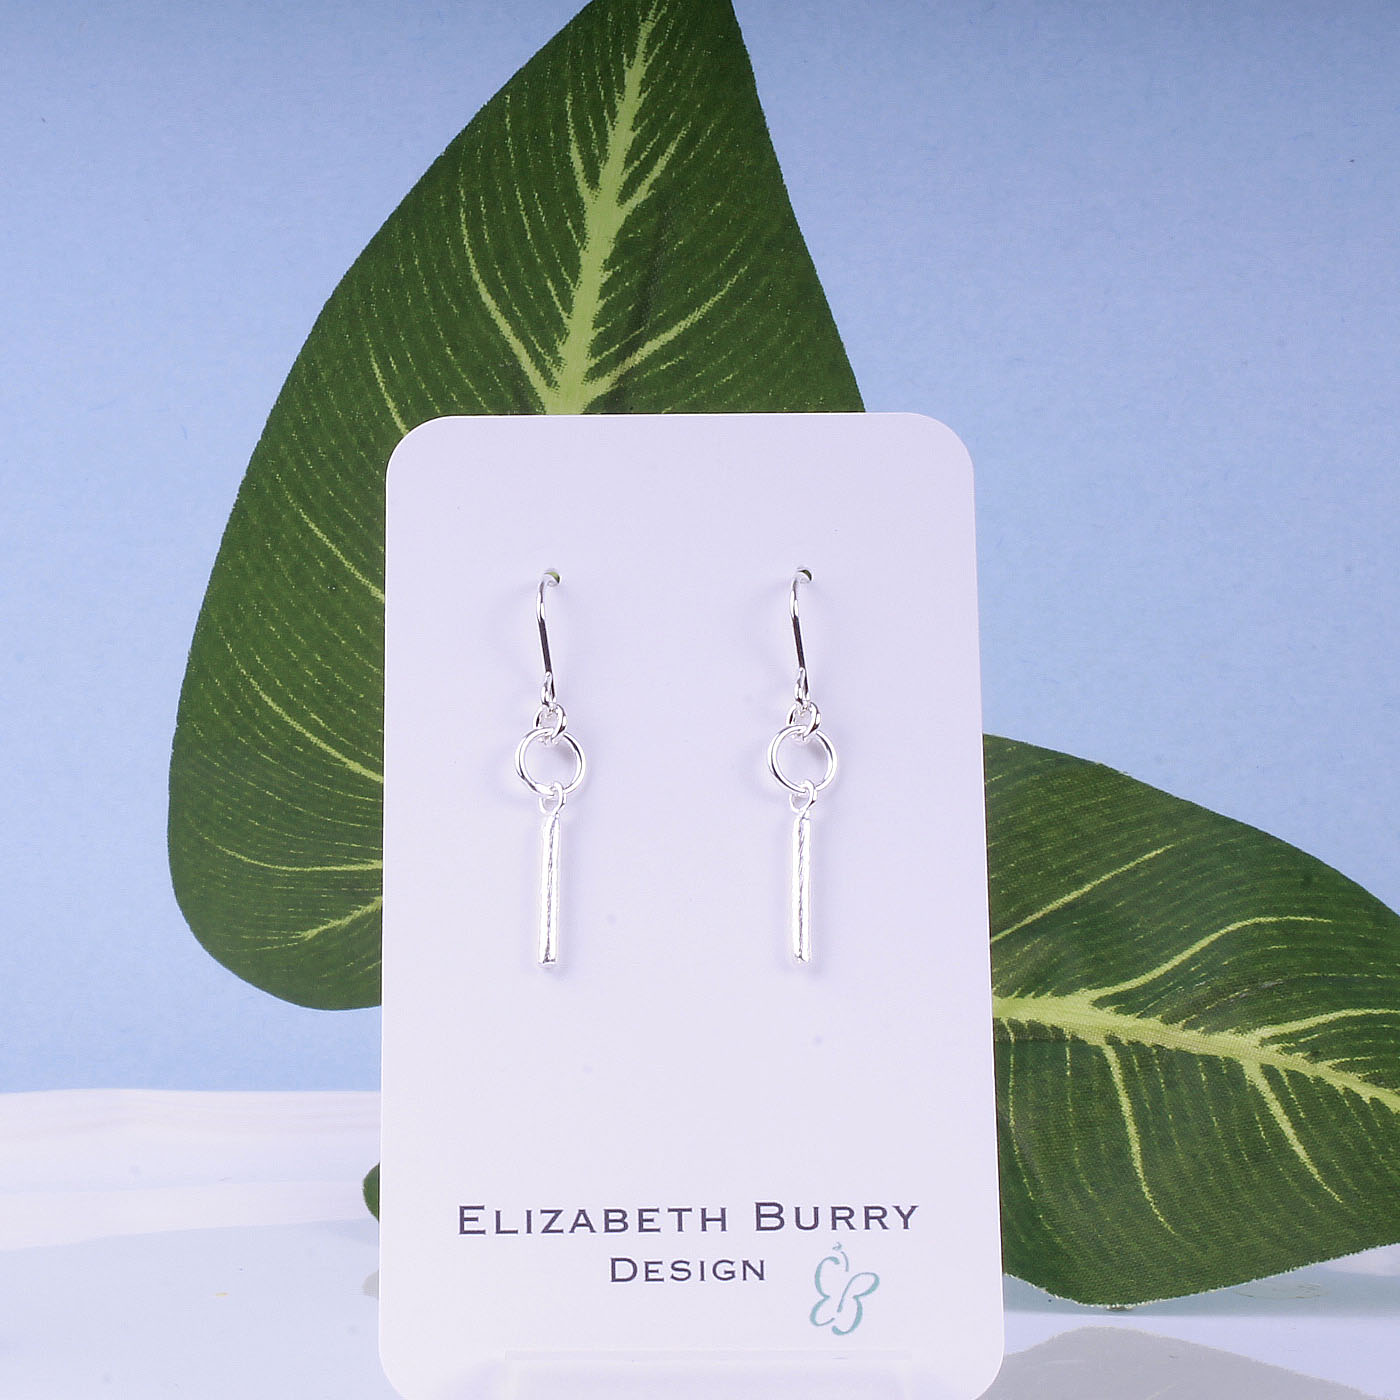 GEO EARRINGS - Elizabeth Burry Design